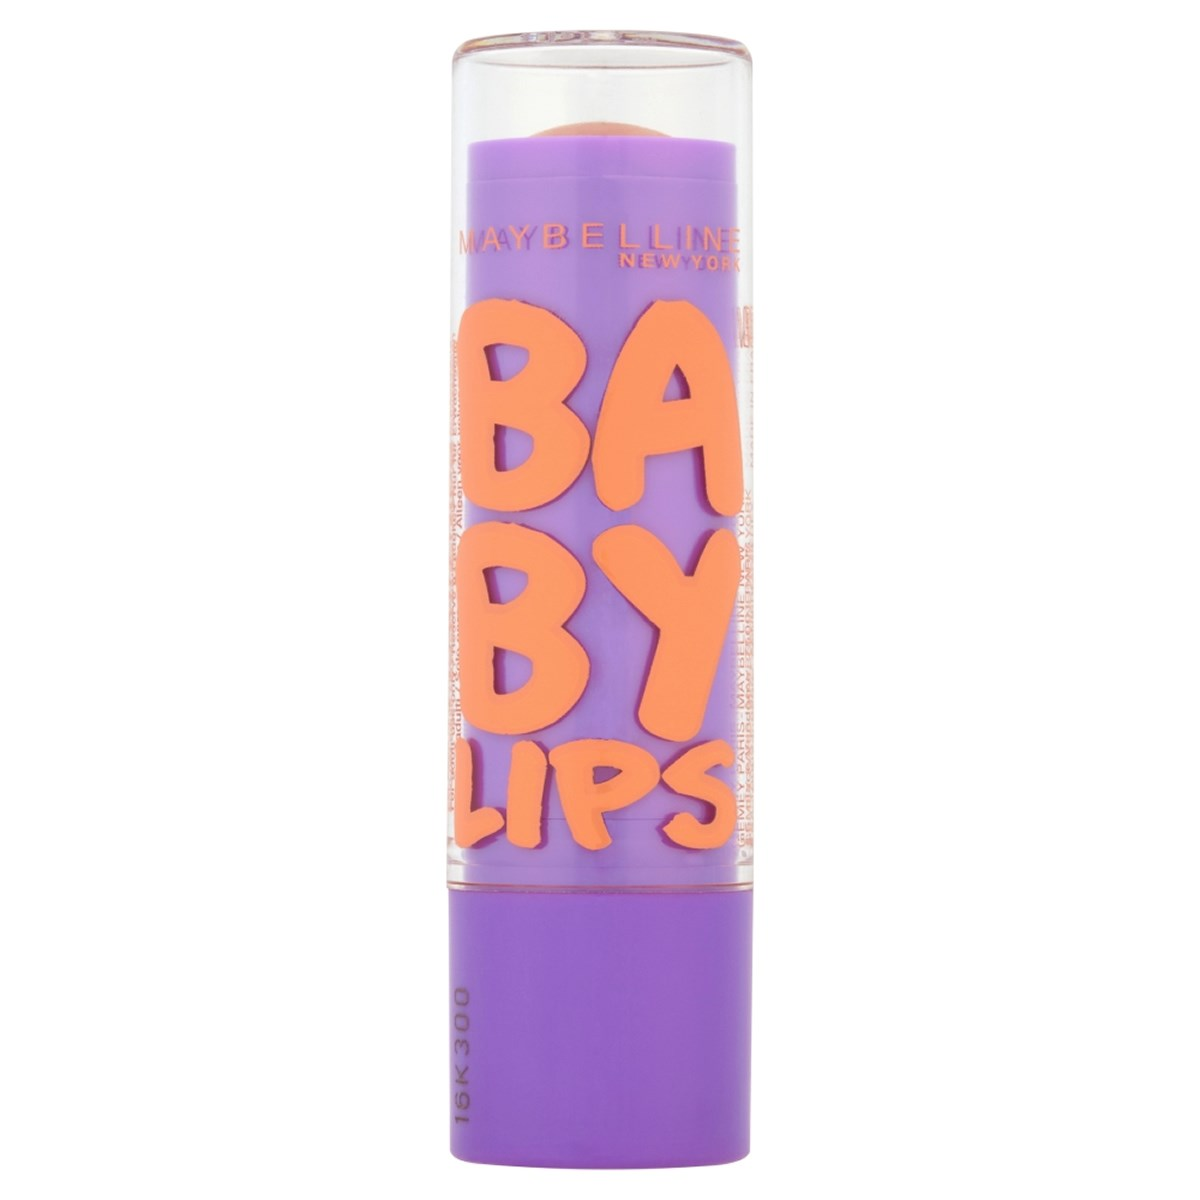 Maybelline Baby Lips Peach Kiss SPF20 Lip Protection Balm